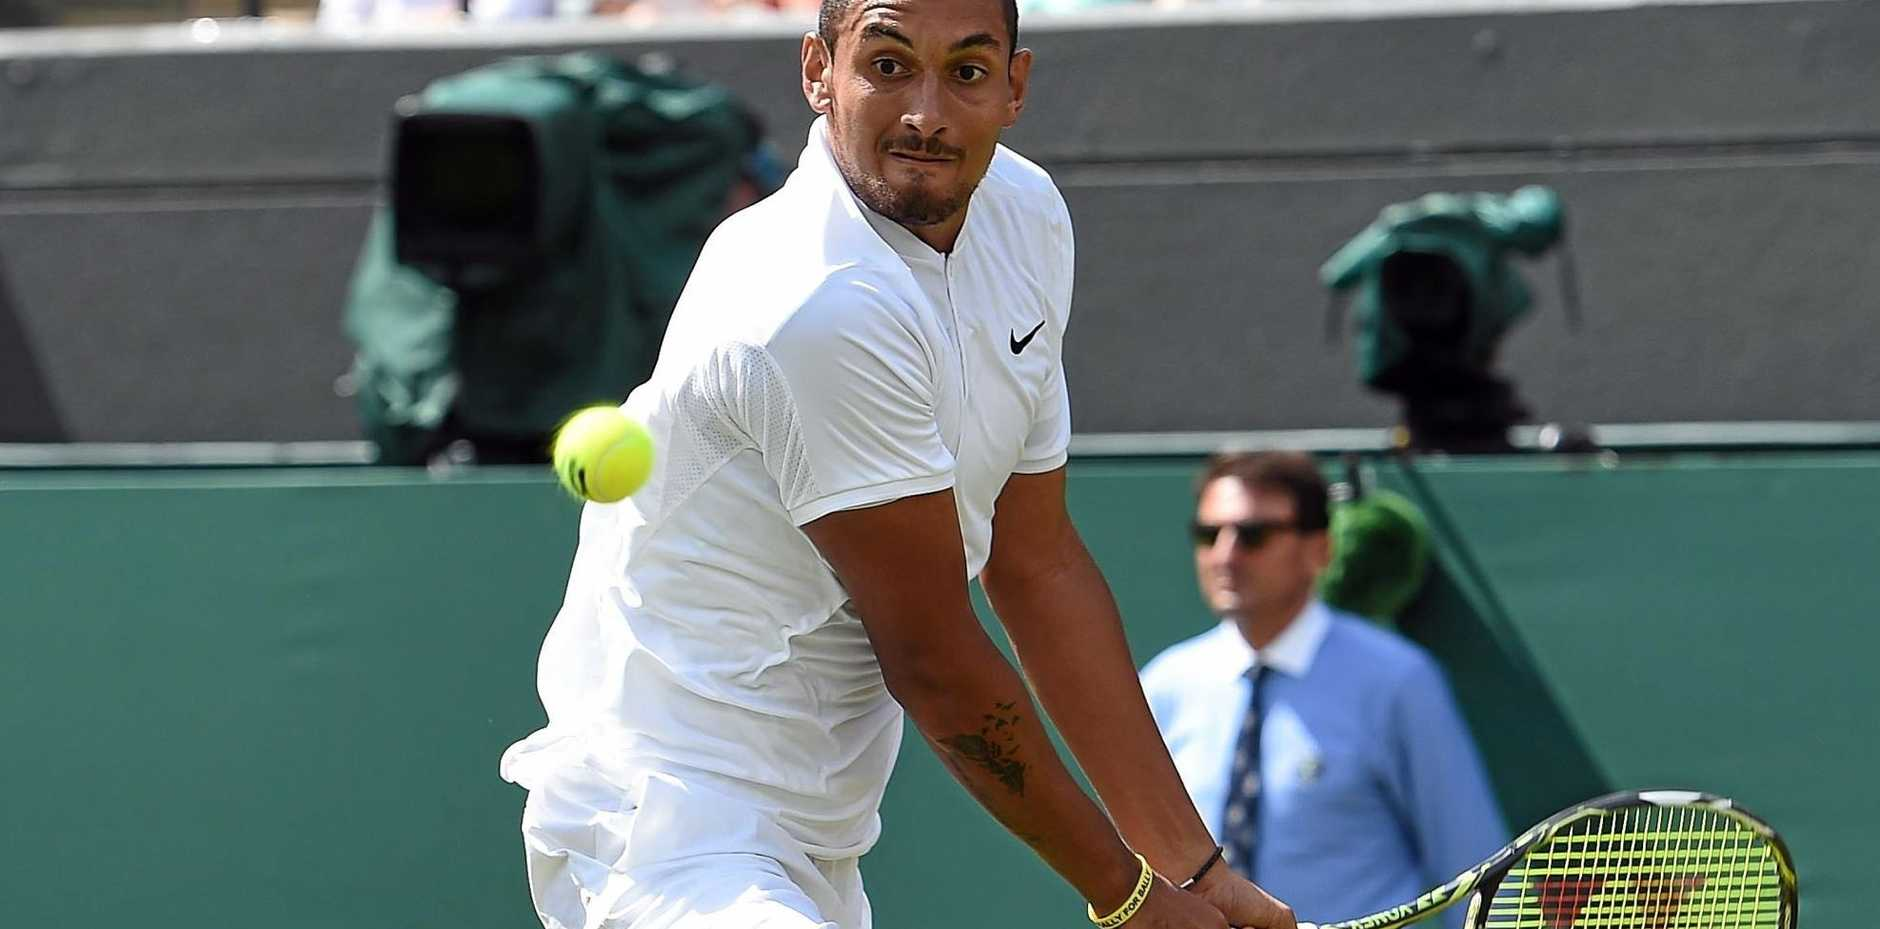 MARCHING ON: Nick Kyrgios of Australia returns to Feliciano Lopez of Spain in their third-round match during the Wimbledon Championships at the All England Lawn Tennis Club in London.